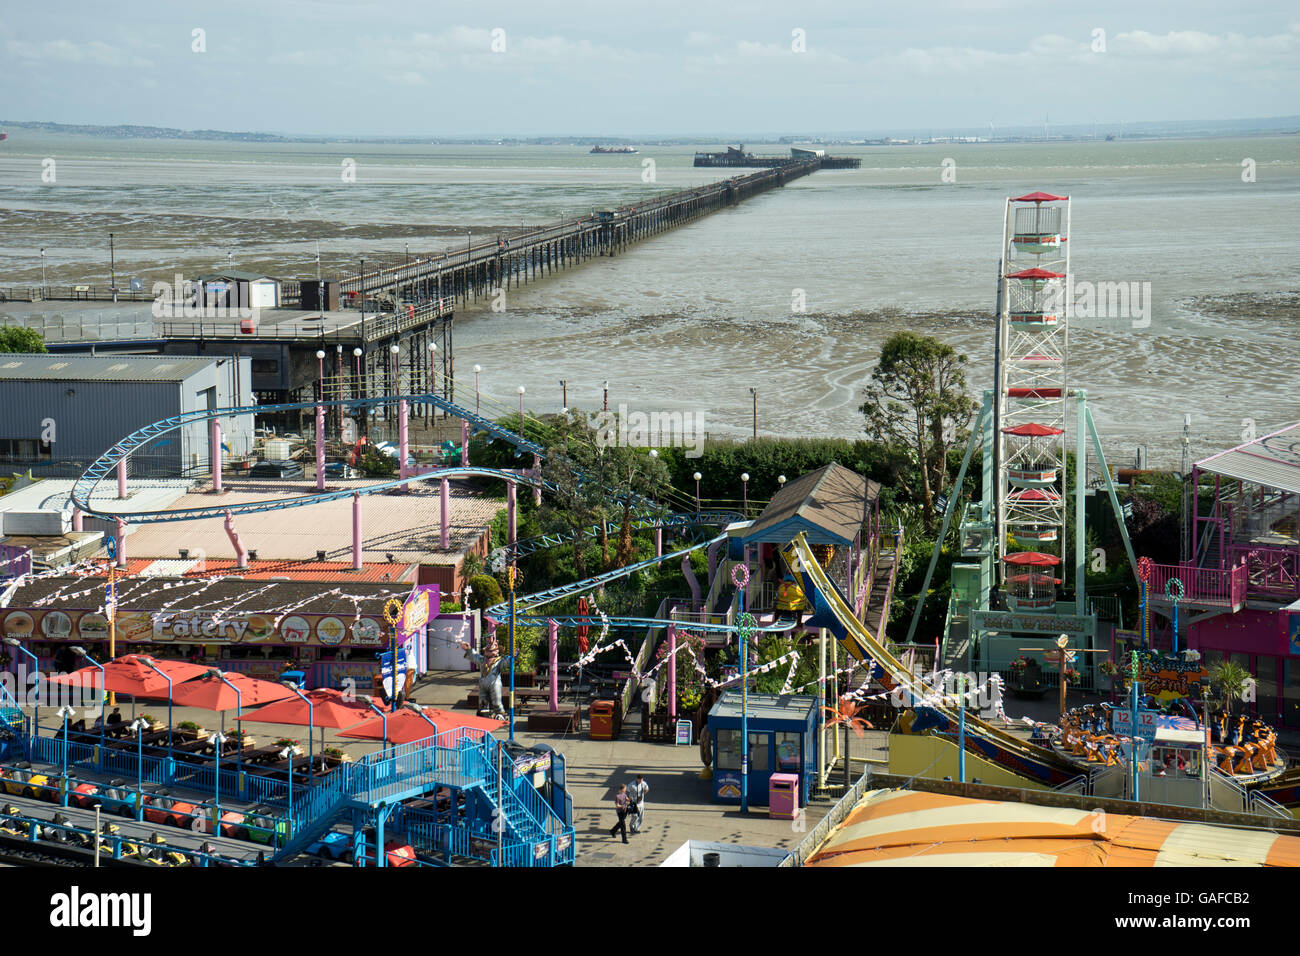 Sea front arcades at Southend-on-Sea. Essex.UK Stock Photo